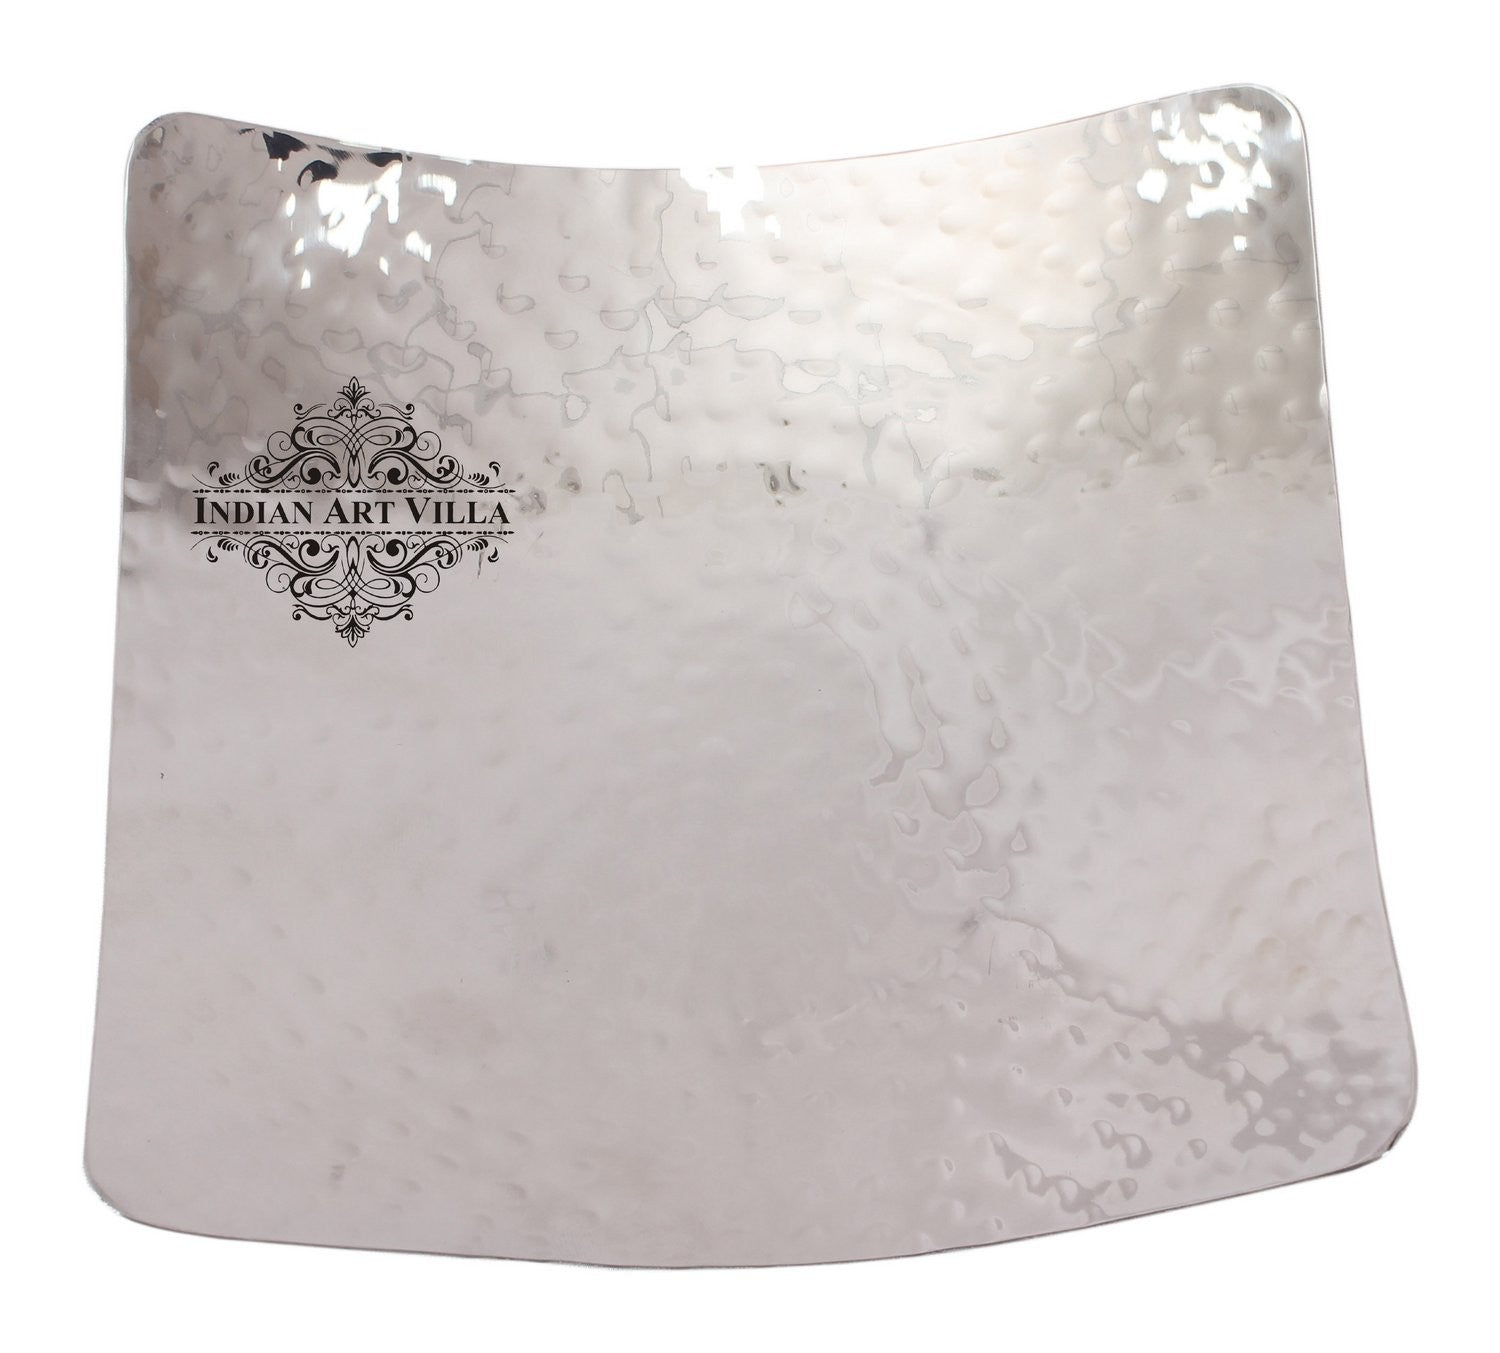 Steel Hammered Design Square Platter with Legs